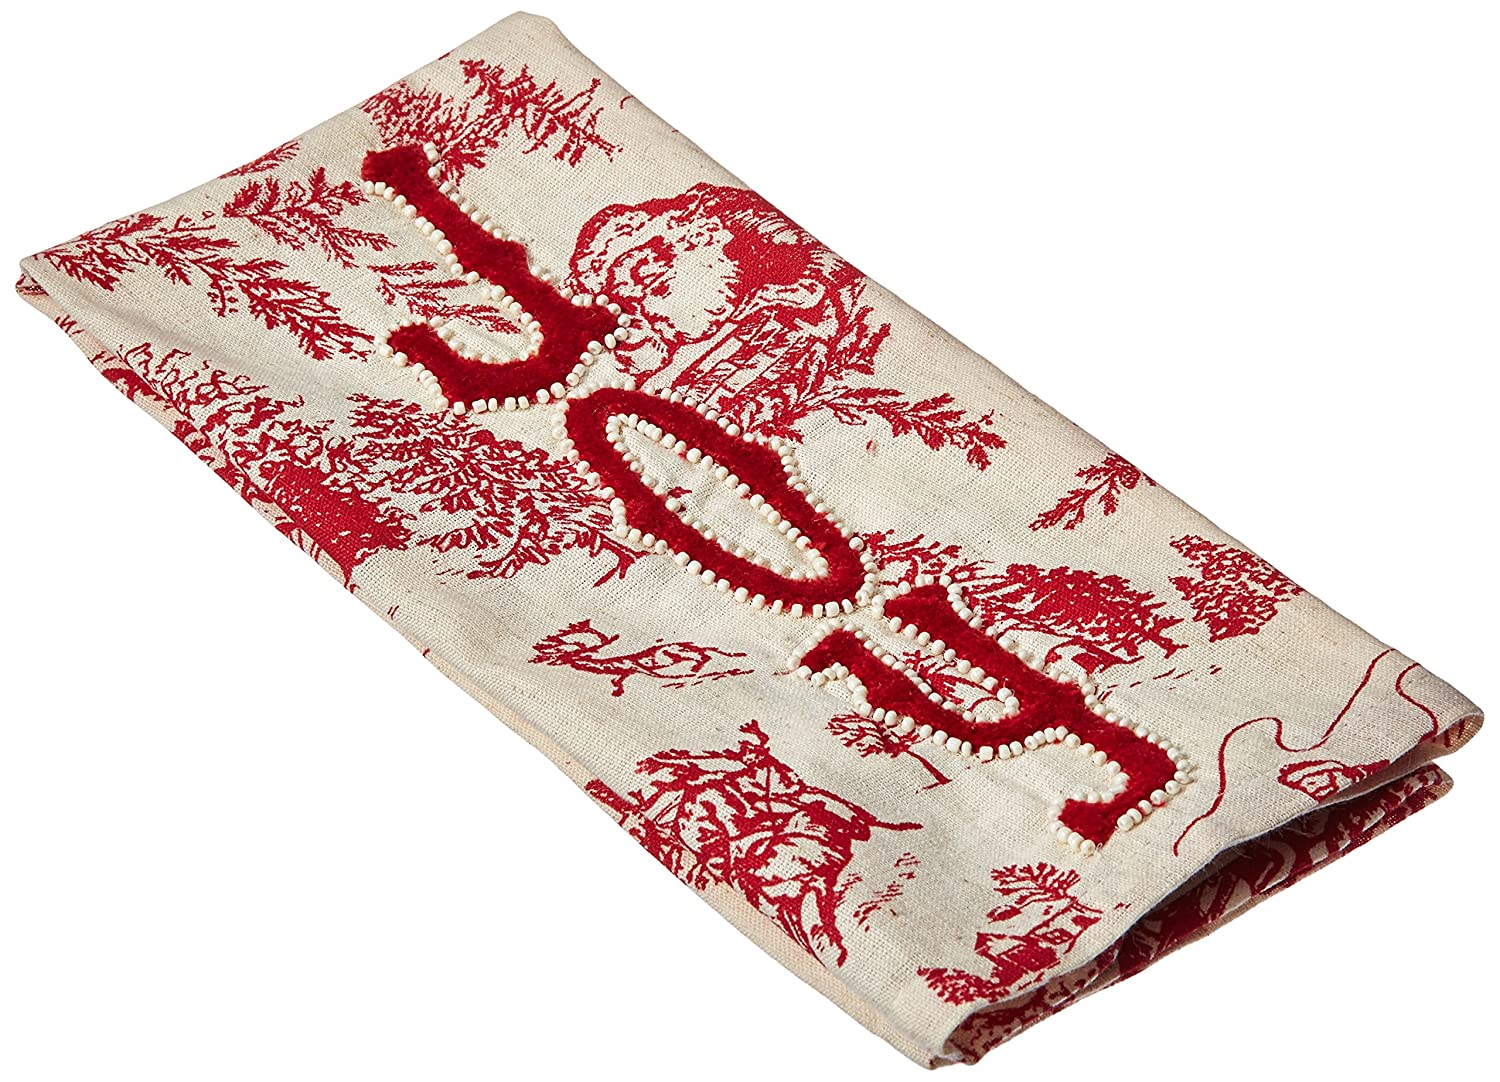 Mud Pie Joy Toile Towel 4404235J